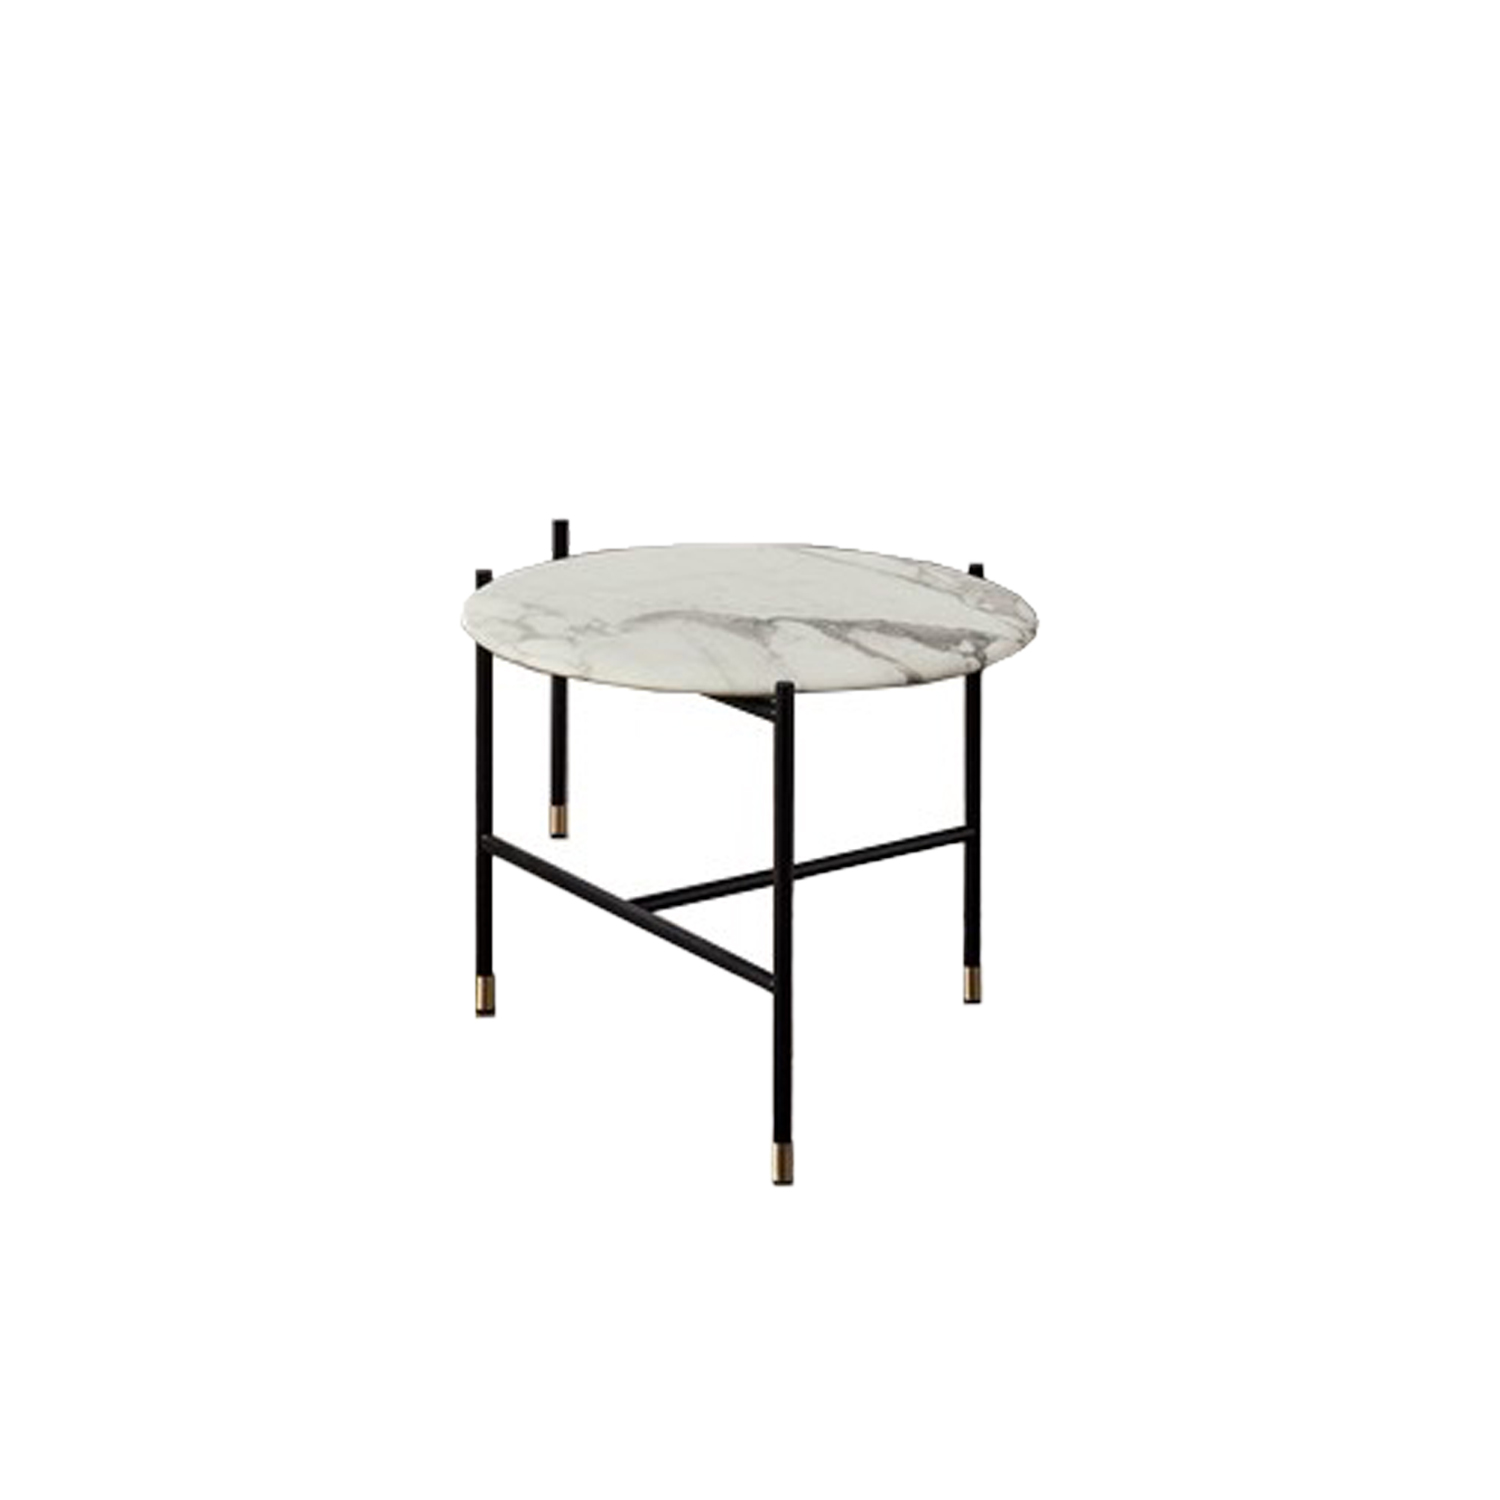 Adrian Round 50R Low Table - Collection of occasional tables featuring smooth edged tops, almost visually floating on a slim frame. 